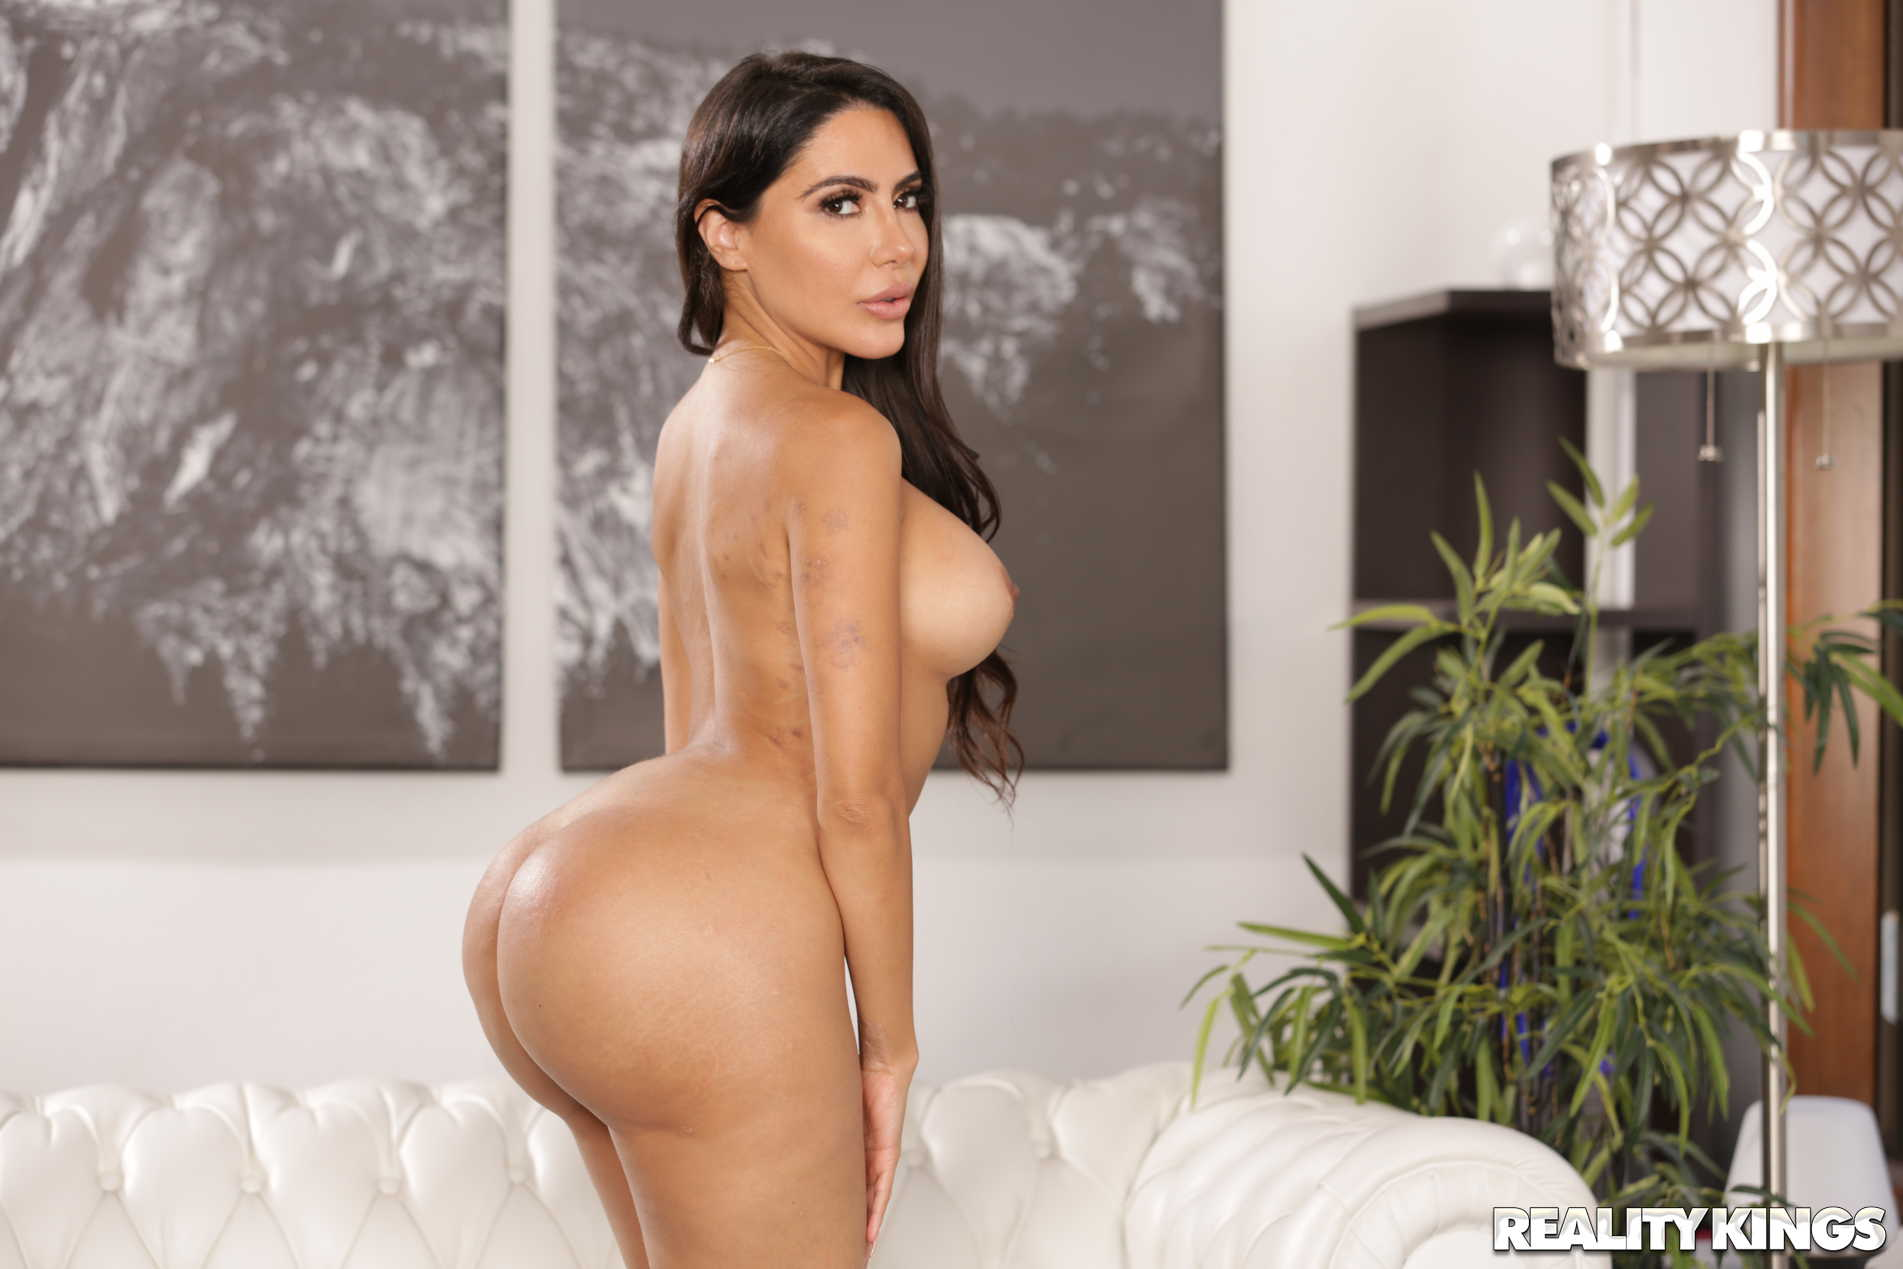 Reality Kings 'Ass Out' starring Lela Star (Photo 55)